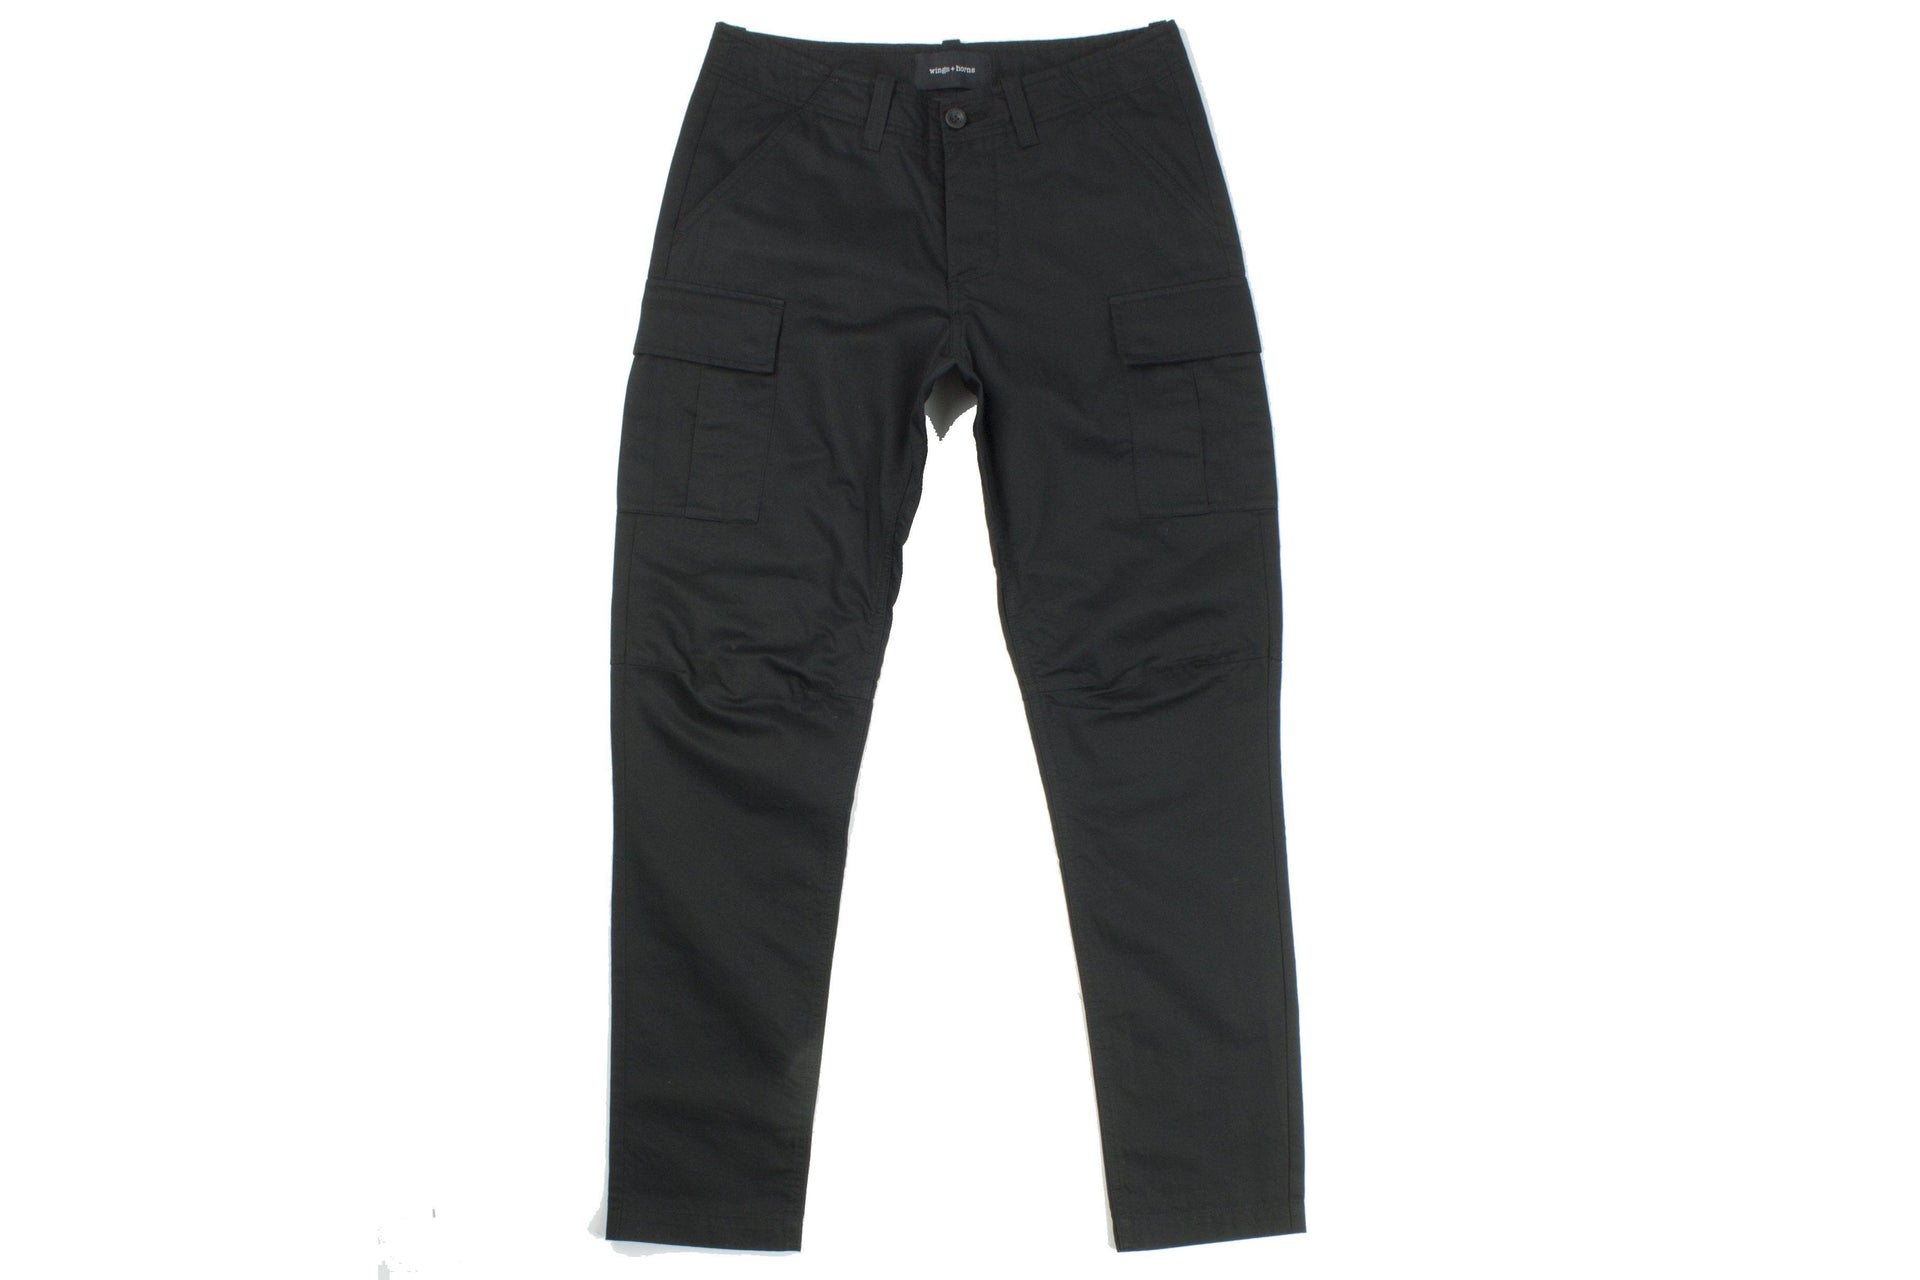 WOVEN UTILITY LINEN BDU PANT BLACK MENS SOFTGOODS WINGS+HORNS BLACK 30 WI-5214